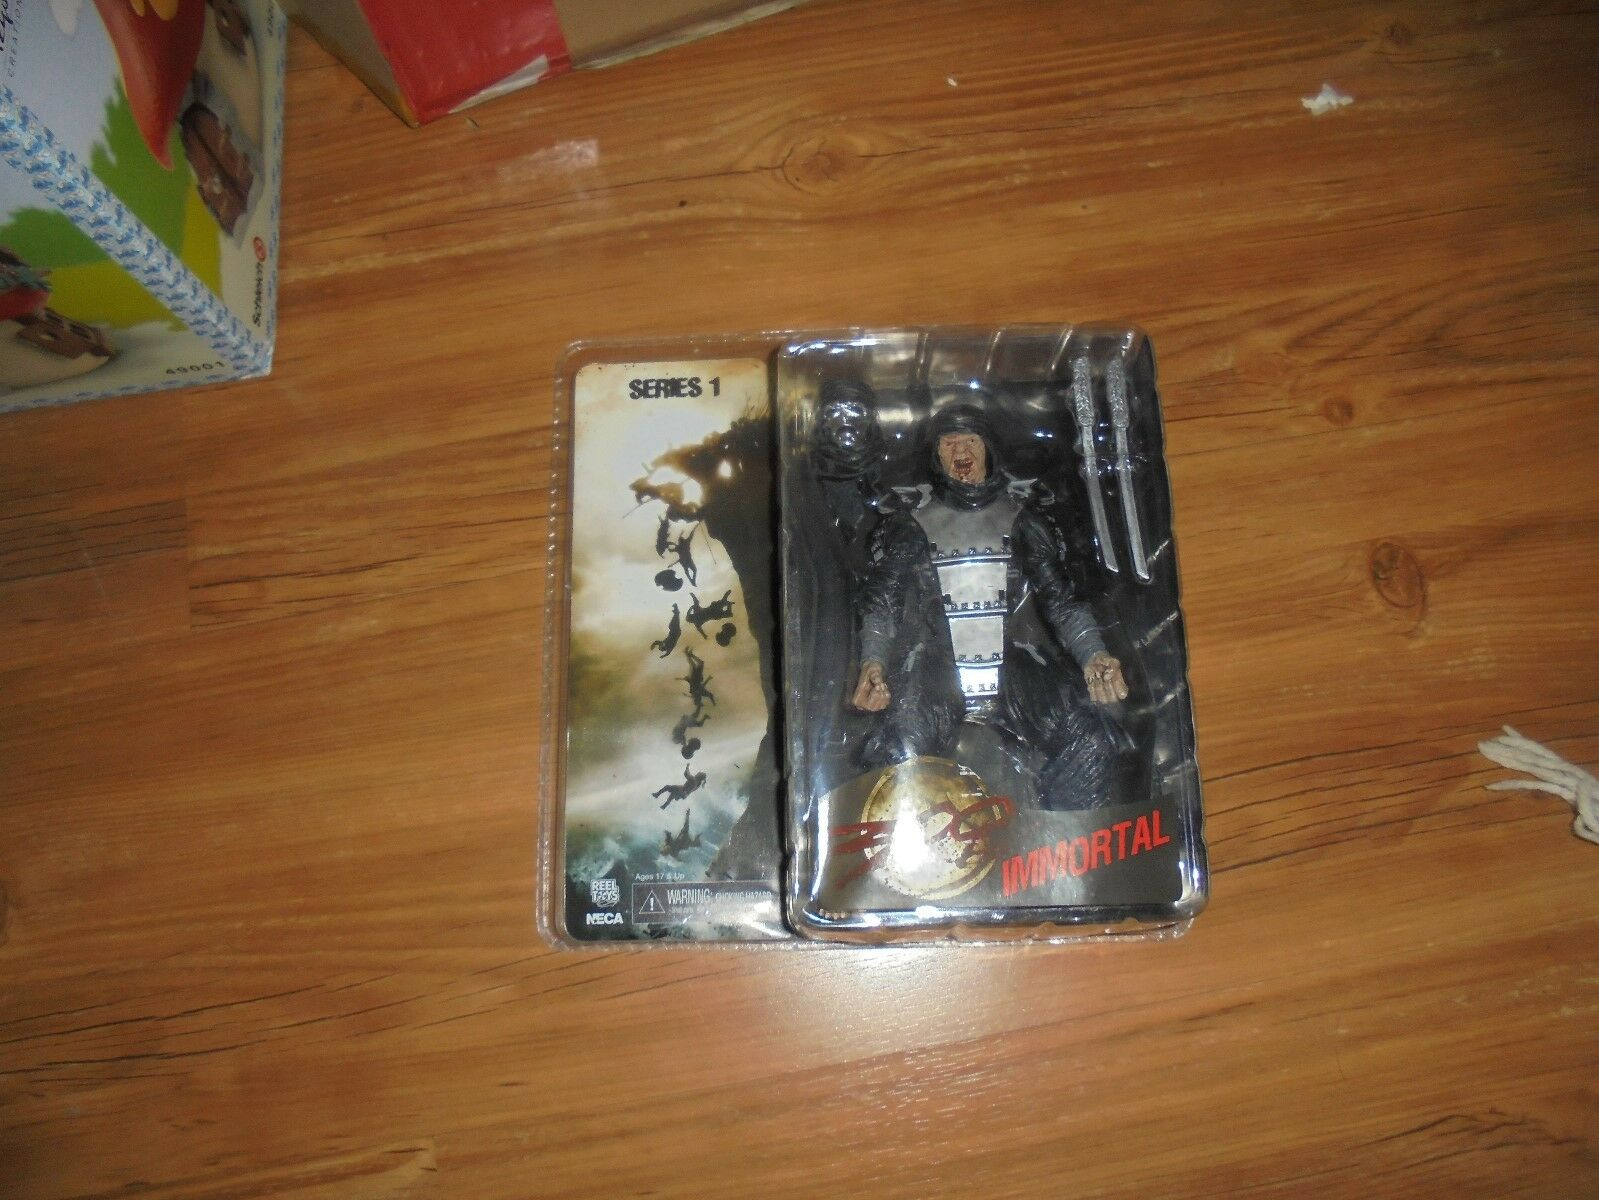 The movie 300  IMMORTAL  Series 1 Action Figure NECA 2007